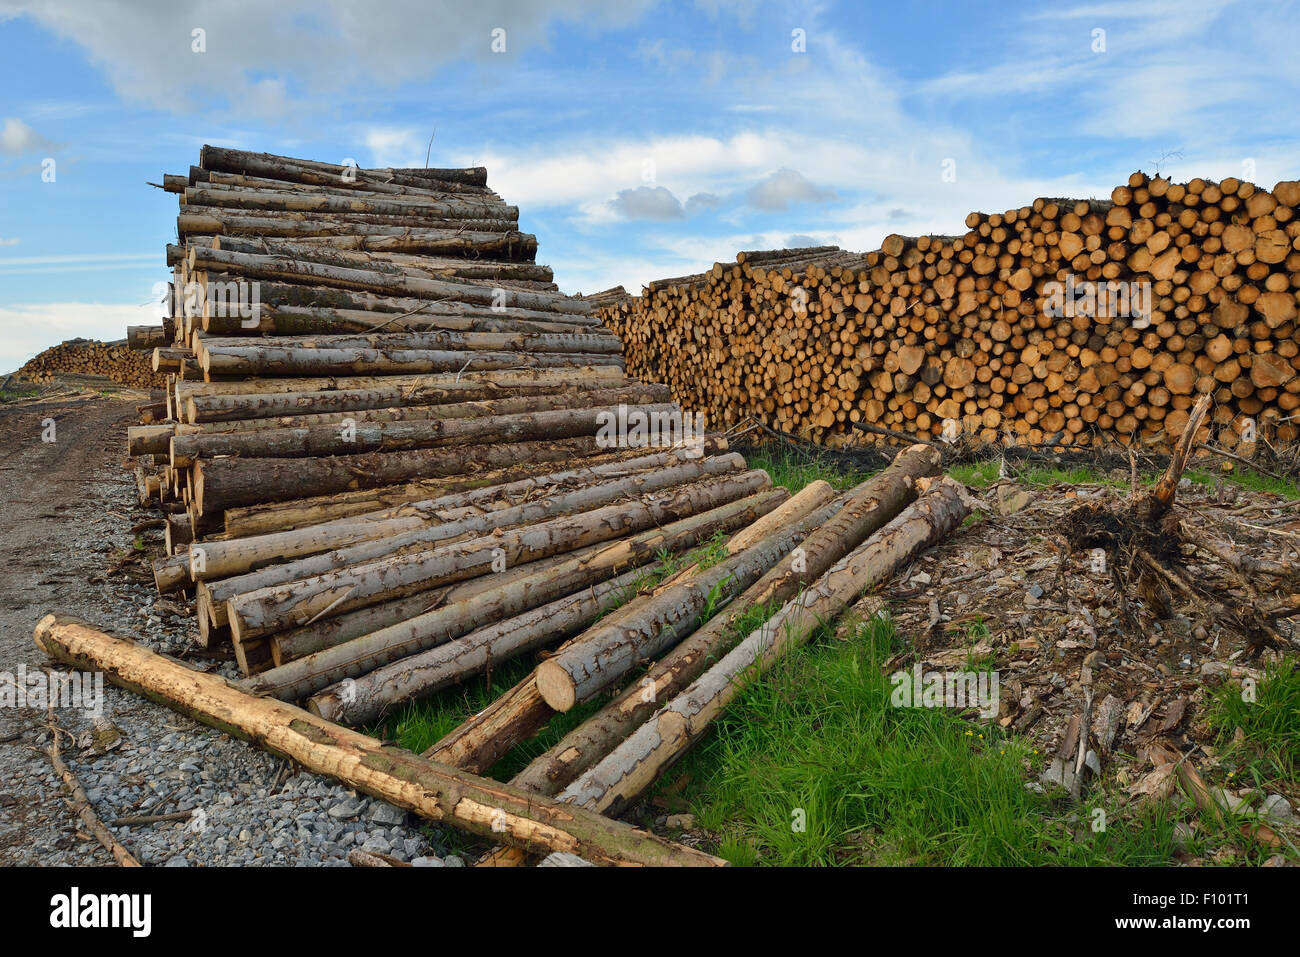 Forestry Timber Stacks in Brecon Beacons, Wales - Stock Image